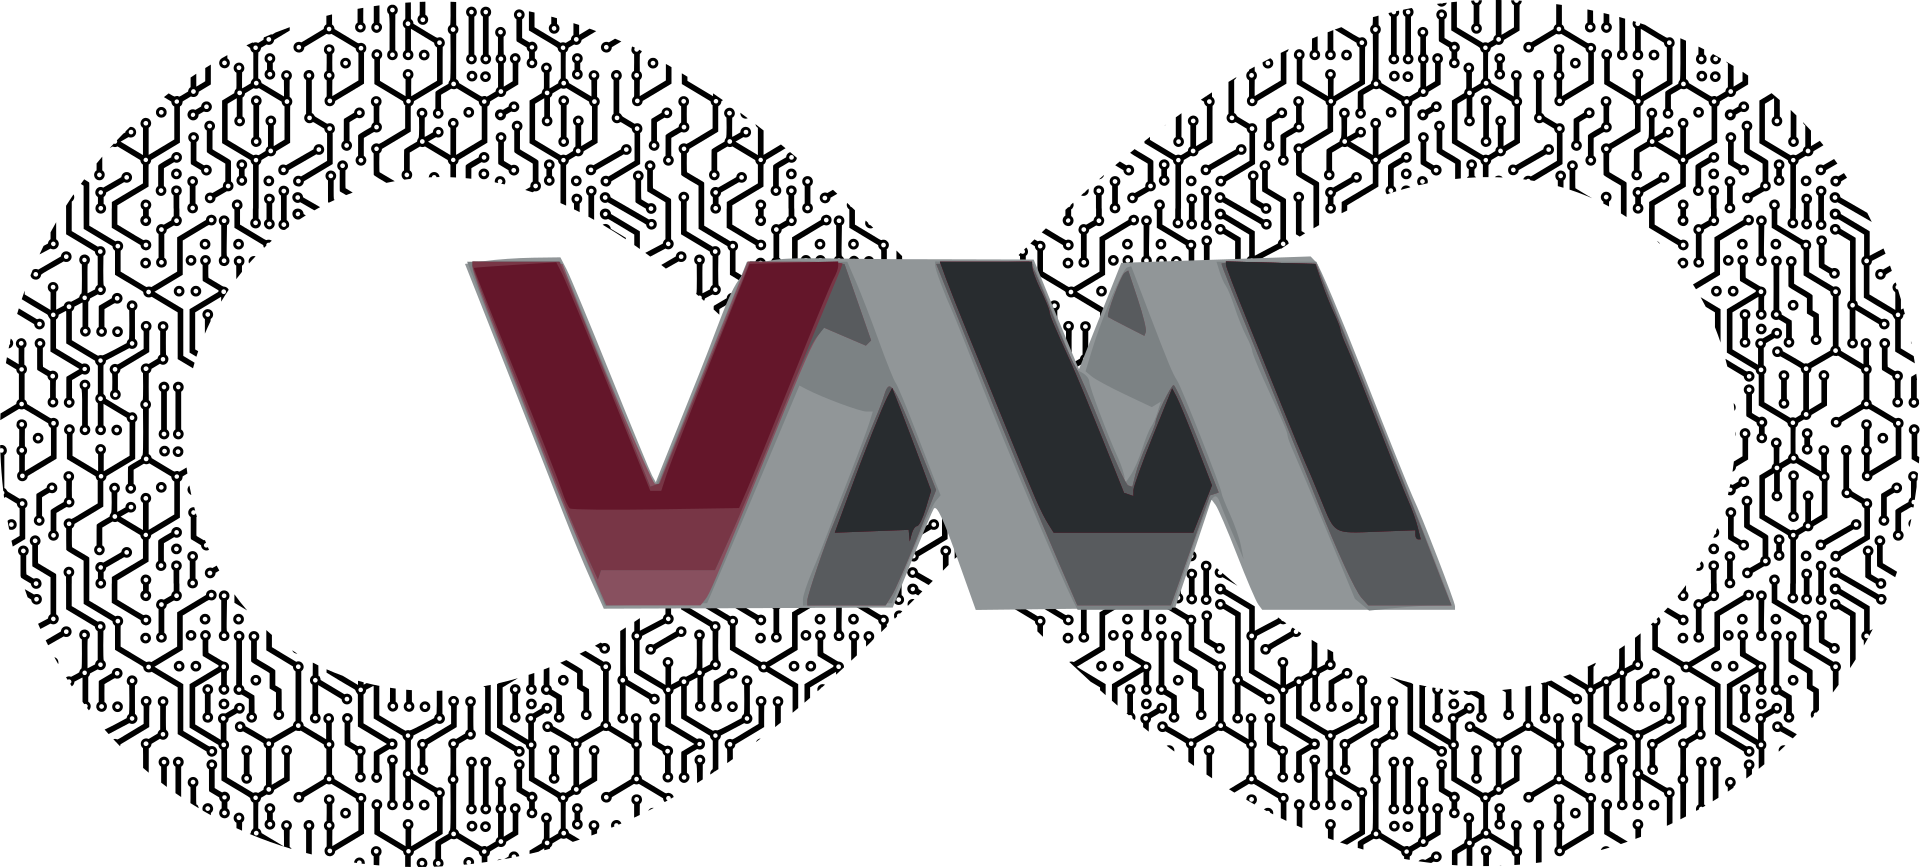 The virtual machine manager logo, with a stylised infinity symbol behind it.